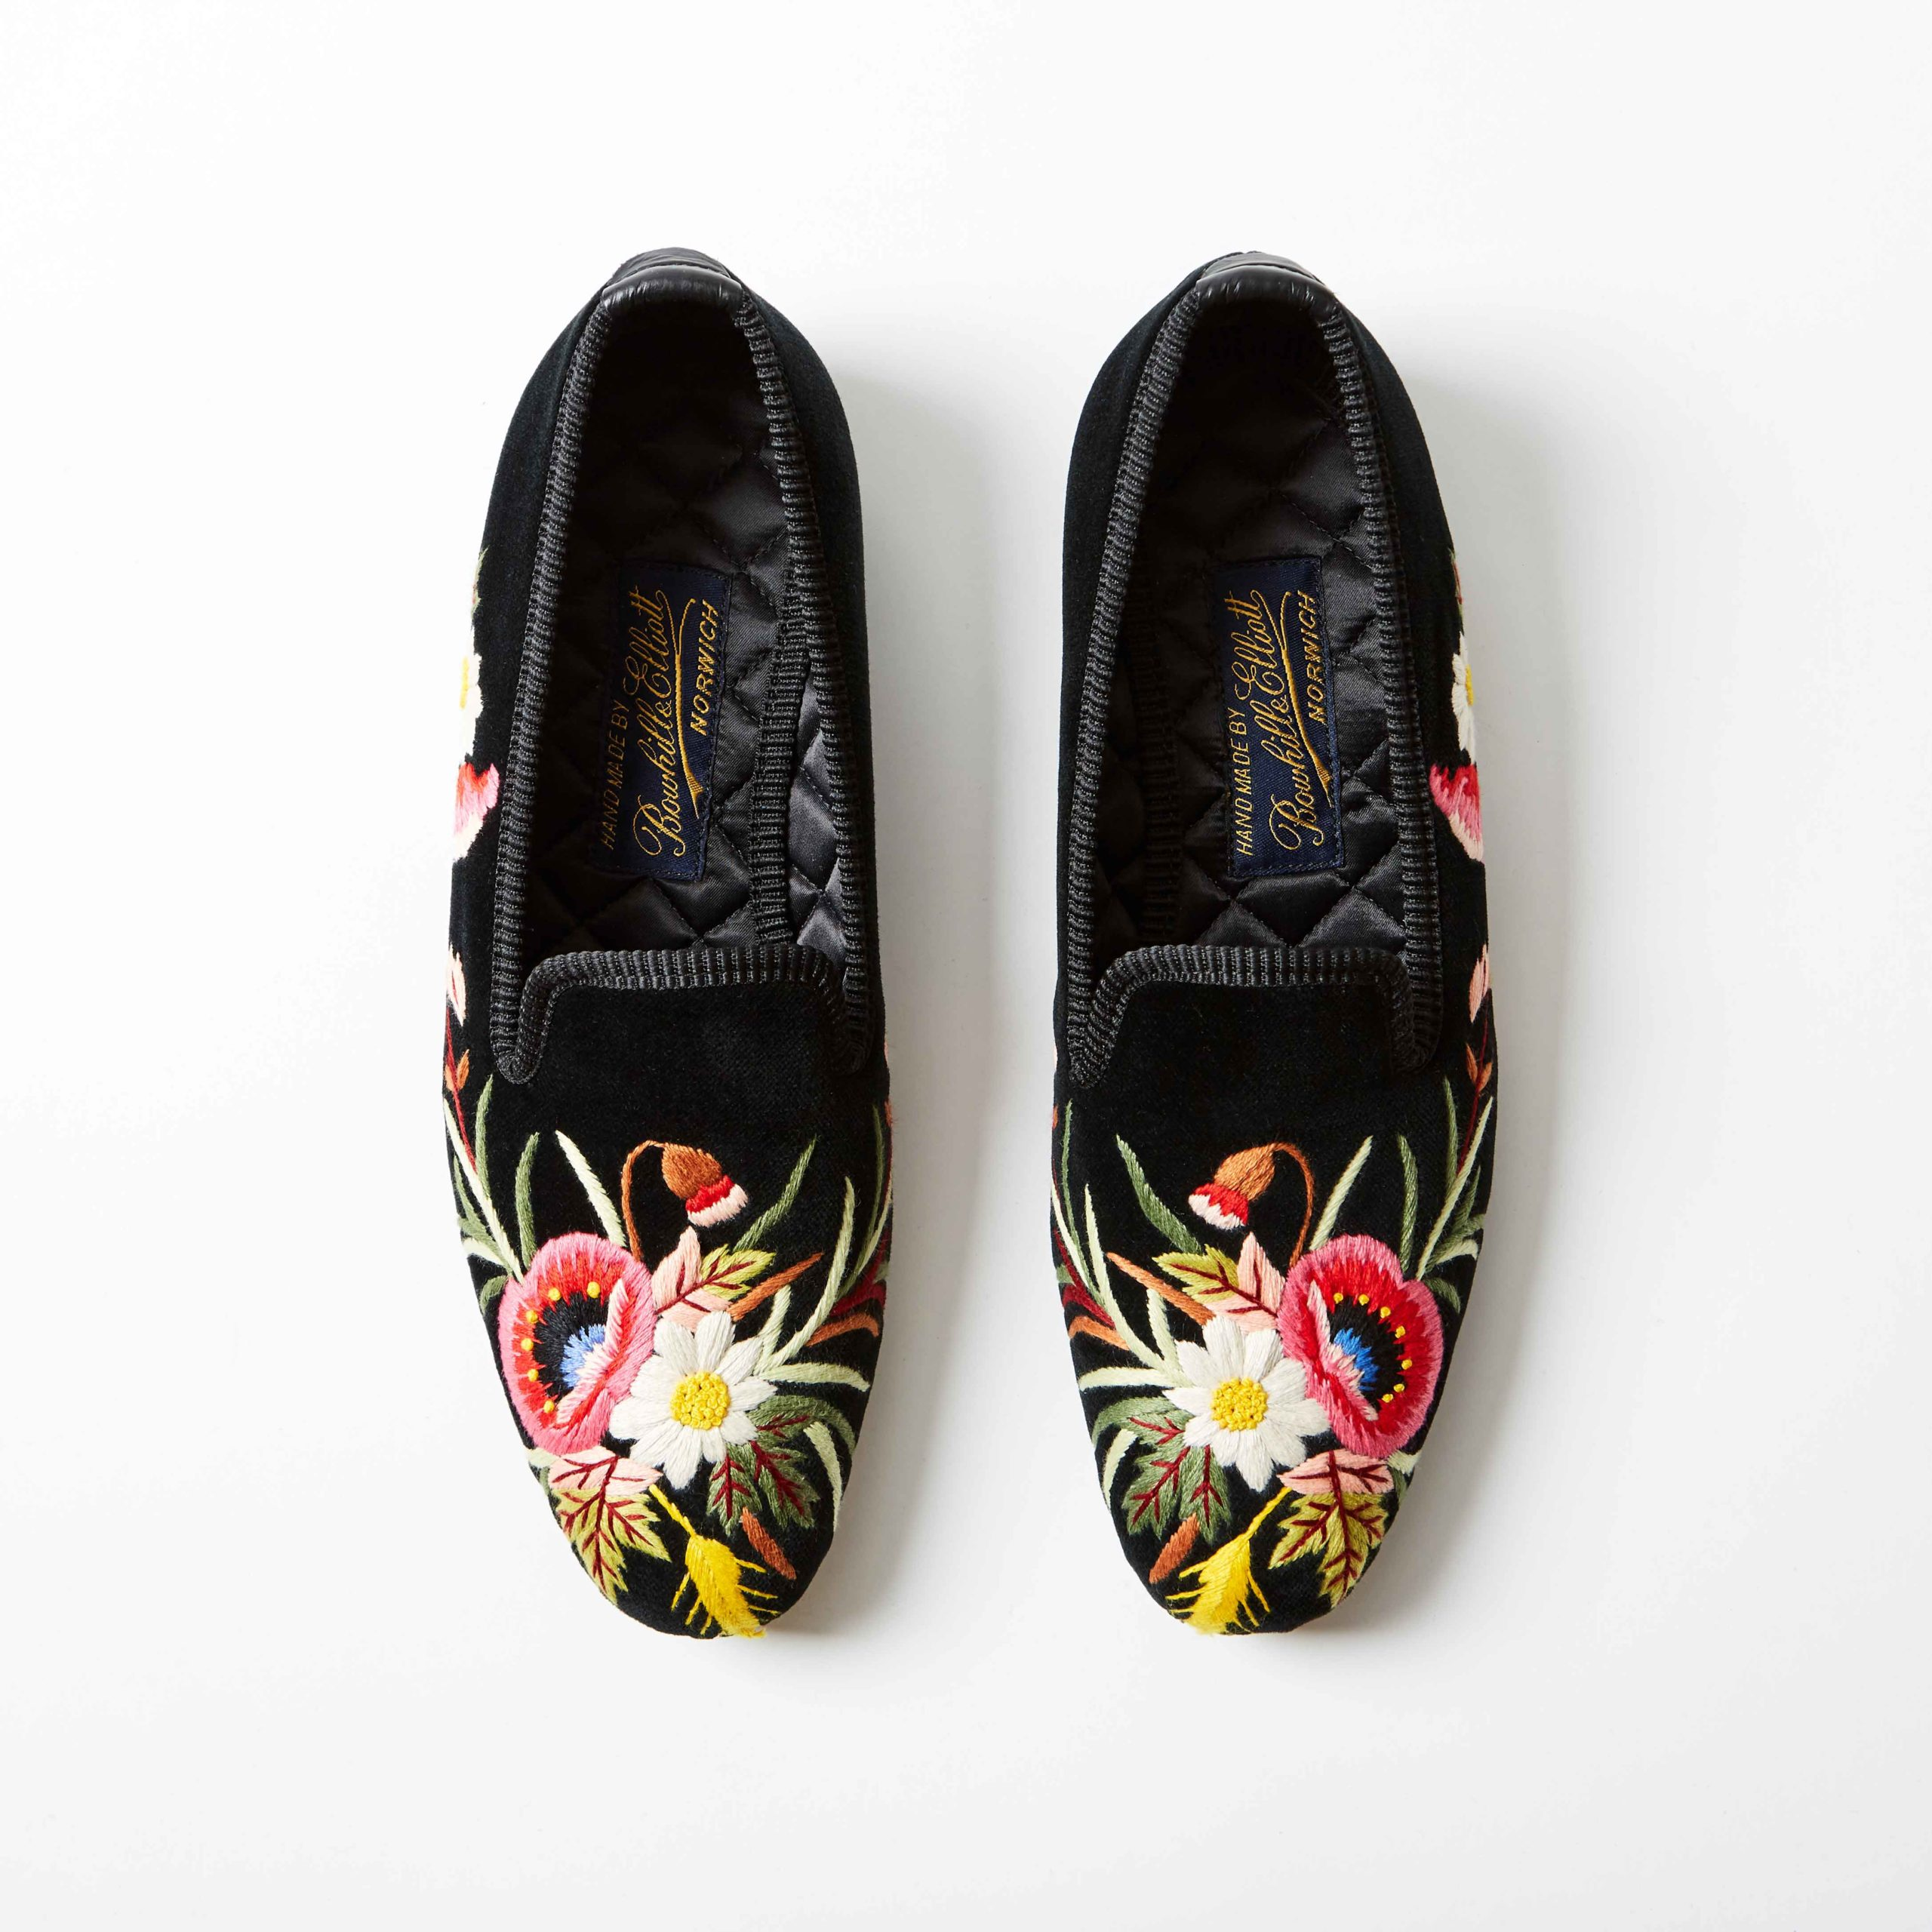 Bowhill and Elliott Black Velvet Albert Slippers with Poppies 1